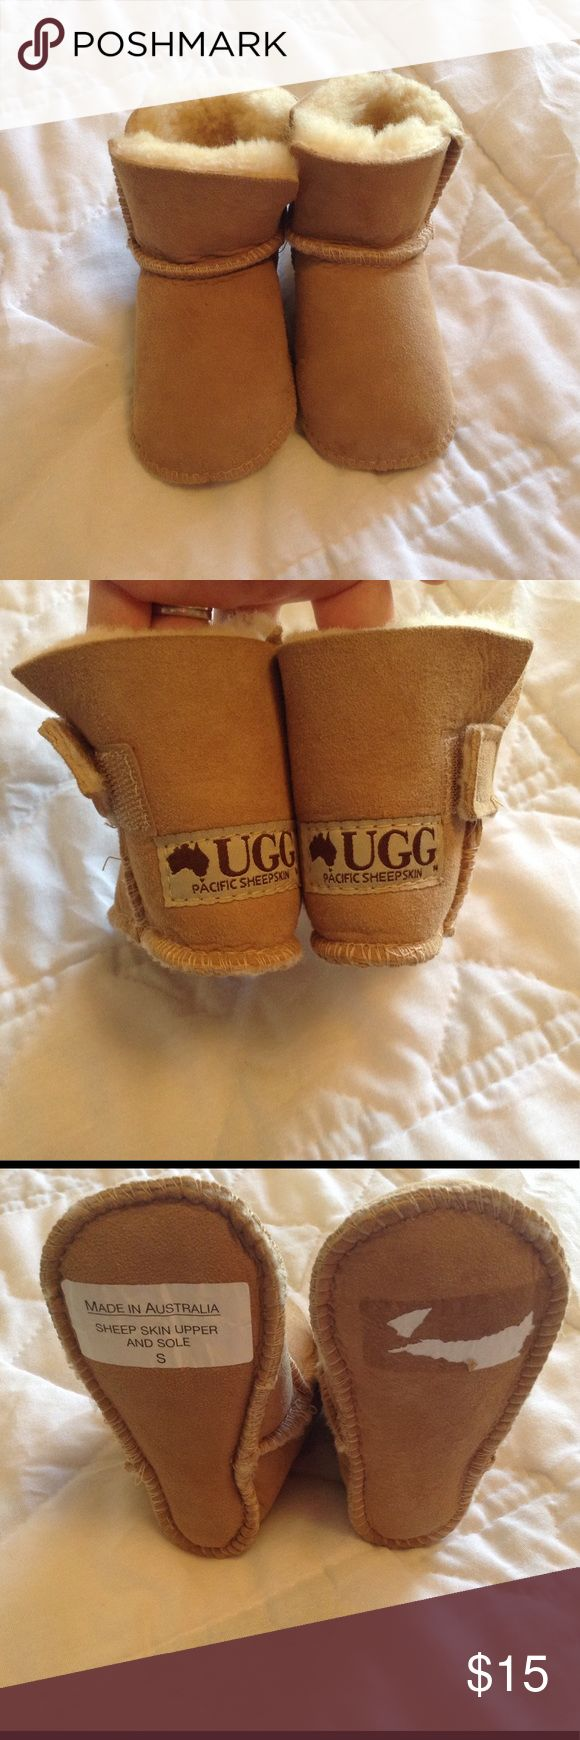 Baby UGG boots Real UGG boots we bought in Australia. Size small but because of thickness of the lambs wool they fit snug for approximately size 6-12months. UGG Shoes Boots